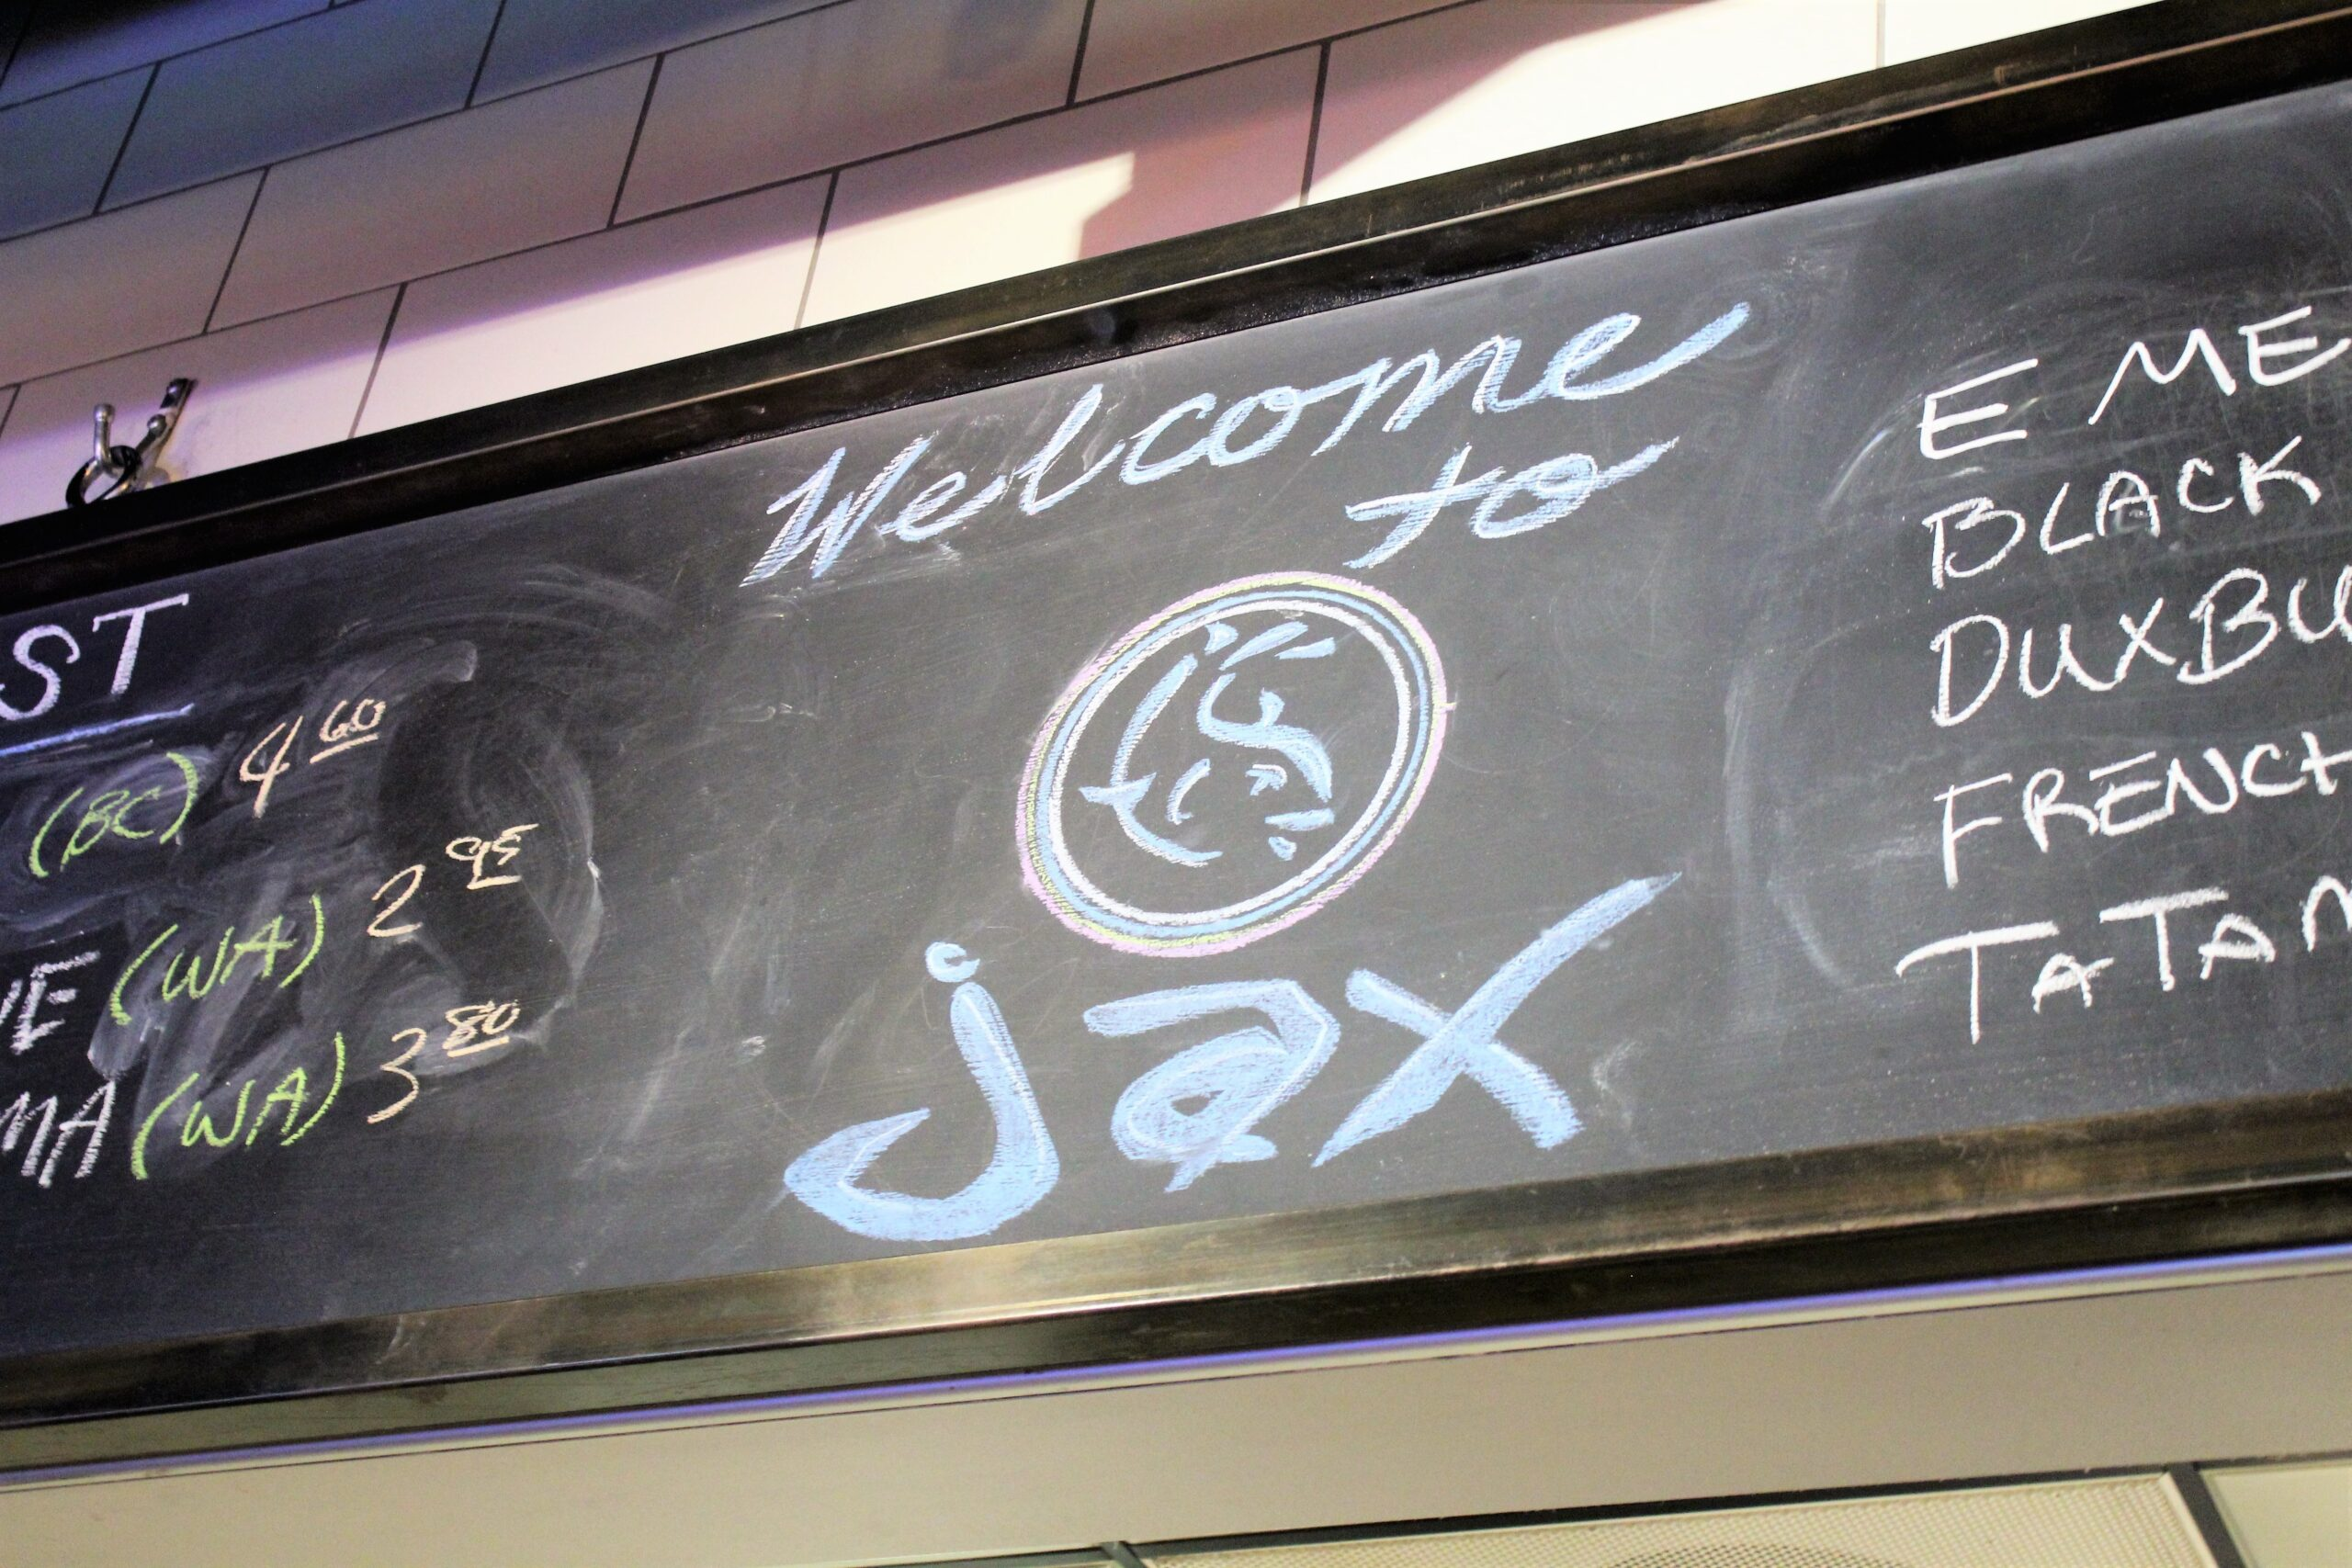 Jax fish house oyster bar celebrates the longest day to for Jax fish house kc